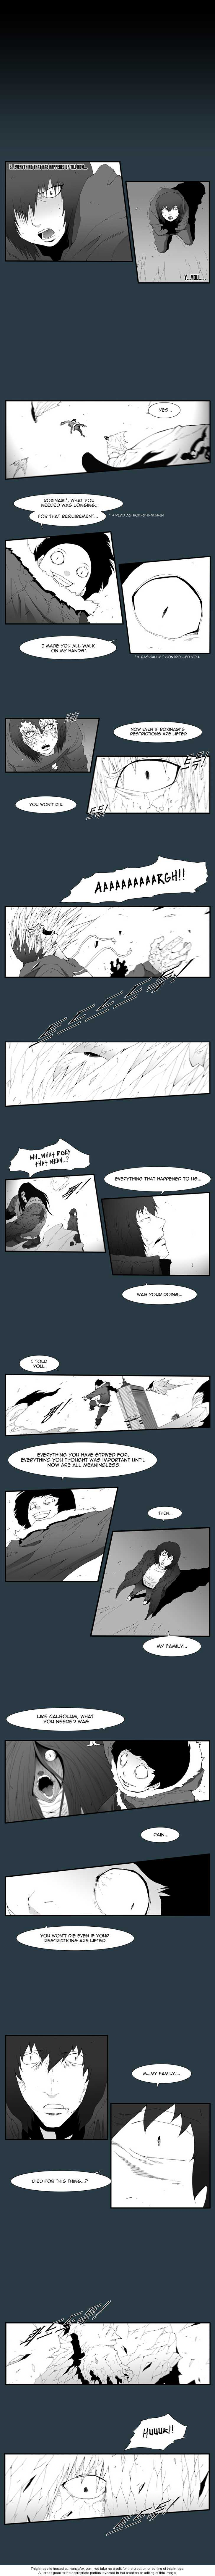 Trace 19 Page 2